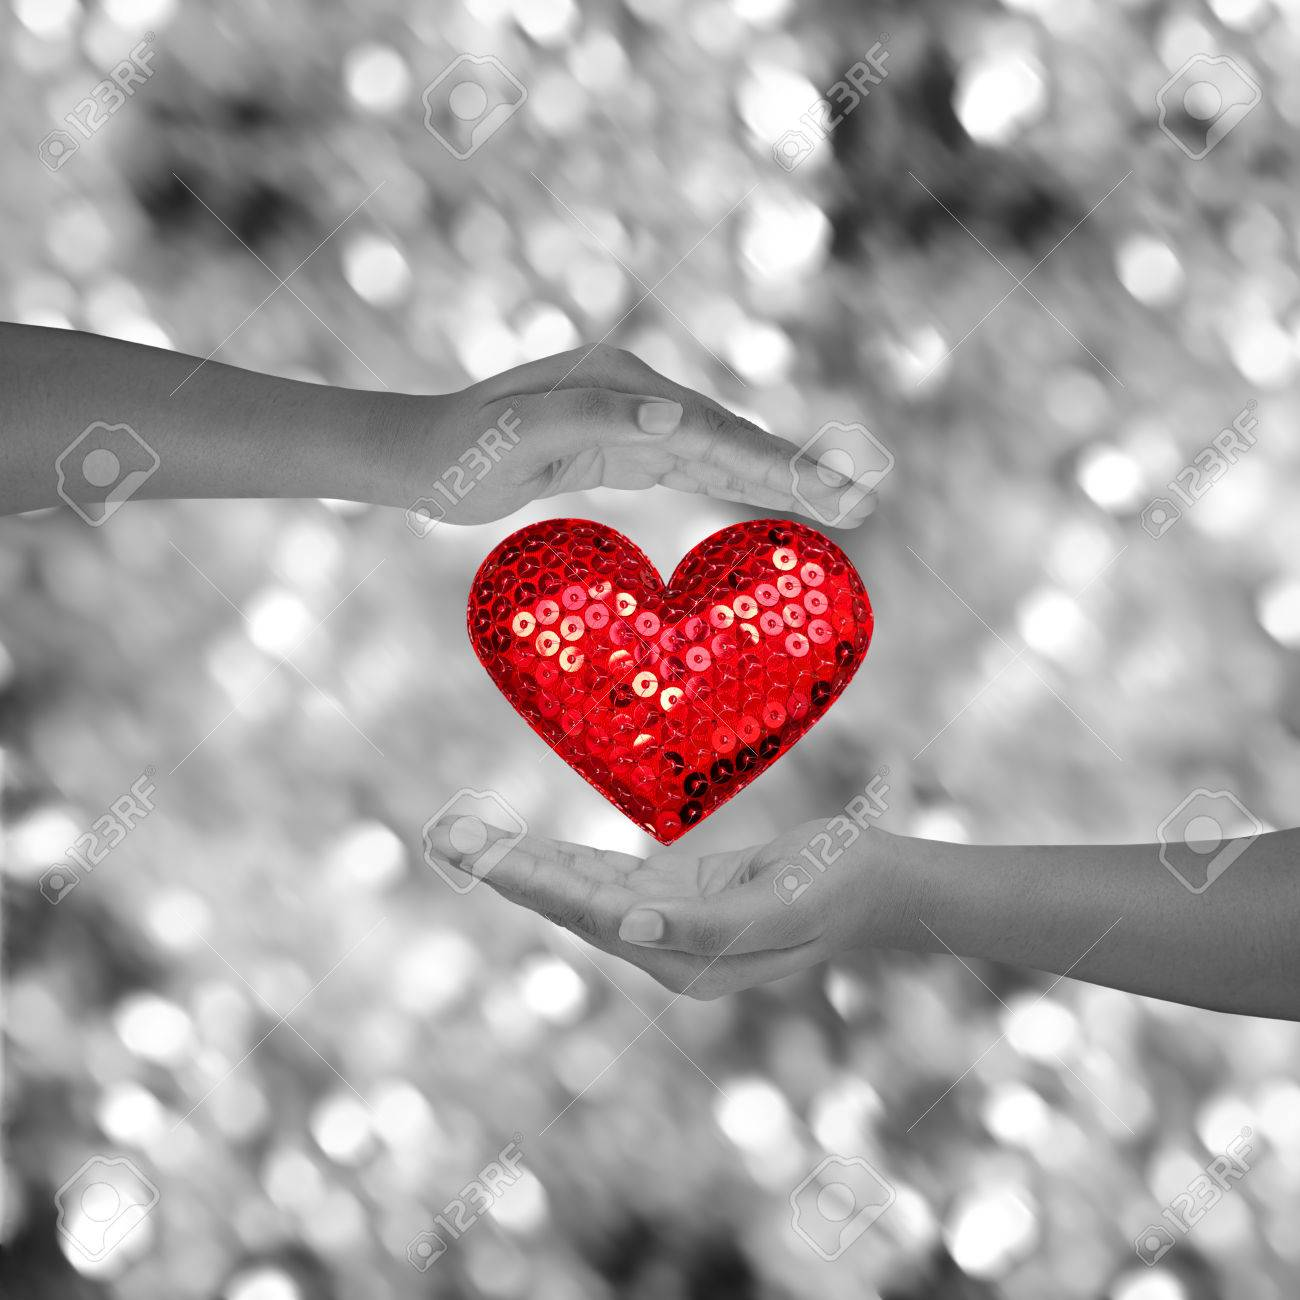 Two hands holding red heart shap on black and white bokeh background